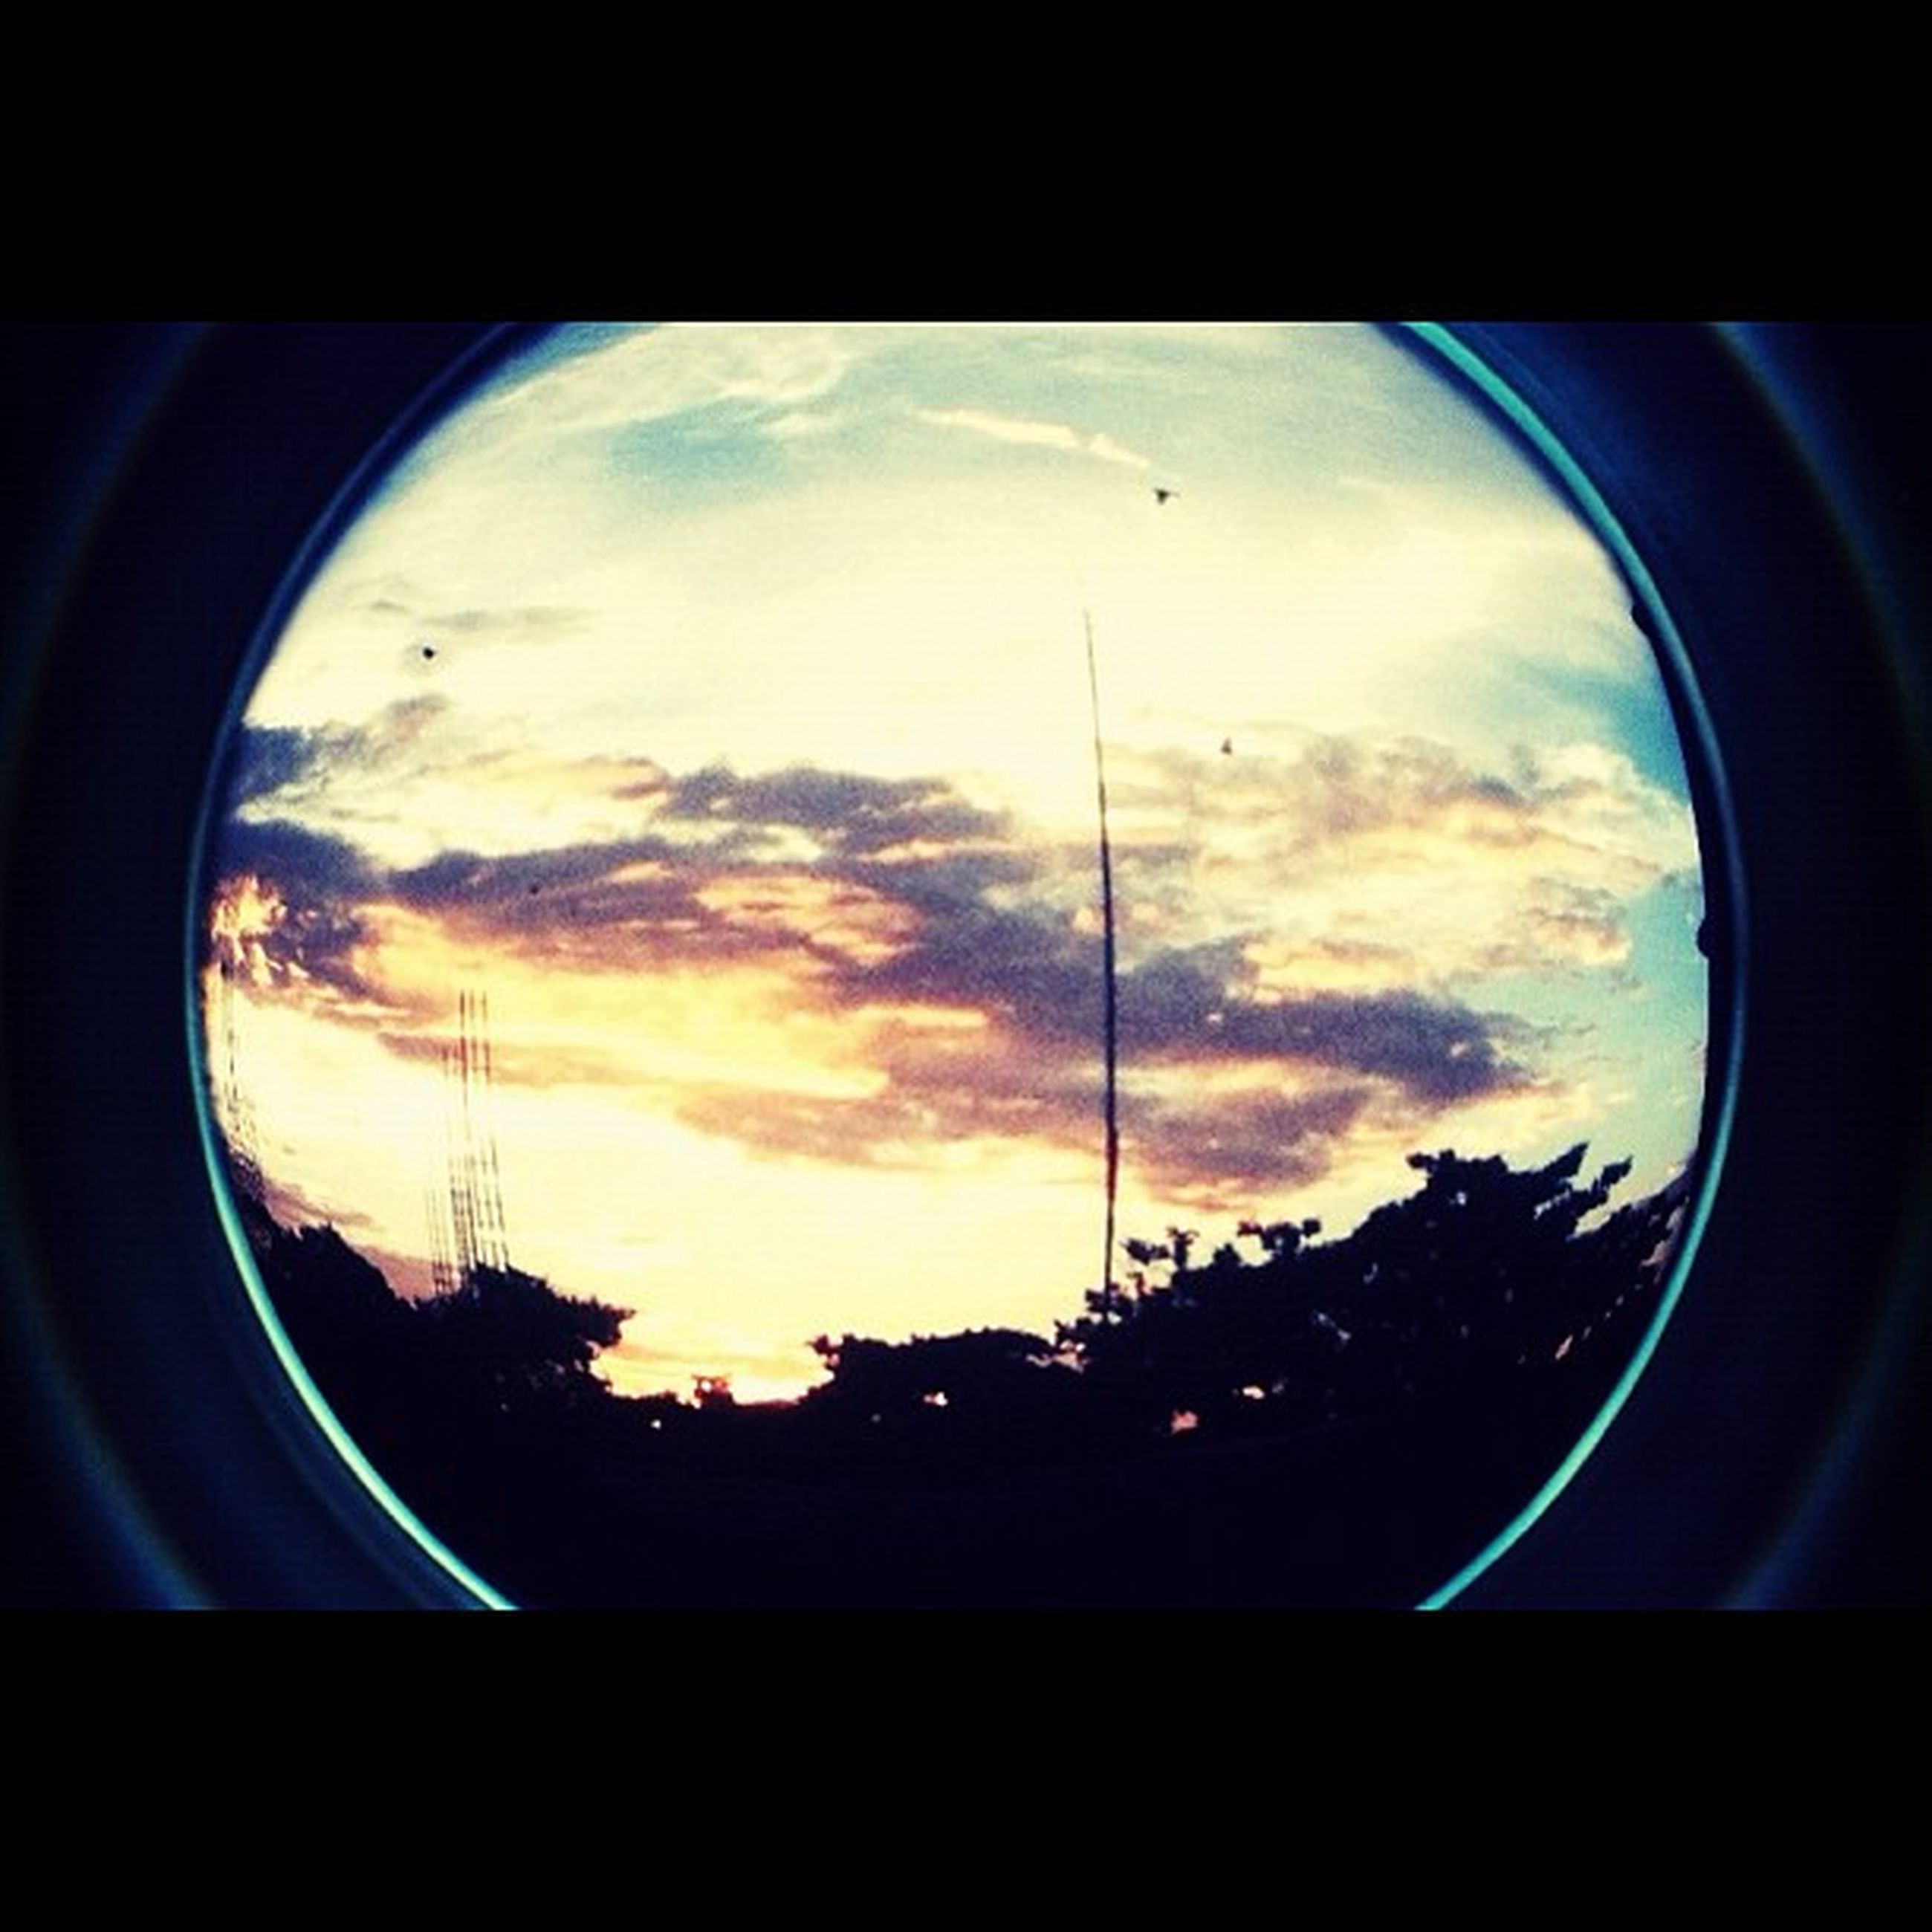 sky, silhouette, window, cloud - sky, transparent, glass - material, tree, indoors, sunset, cloud, low angle view, cloudy, transportation, built structure, fish-eye lens, no people, nature, car, architecture, dusk